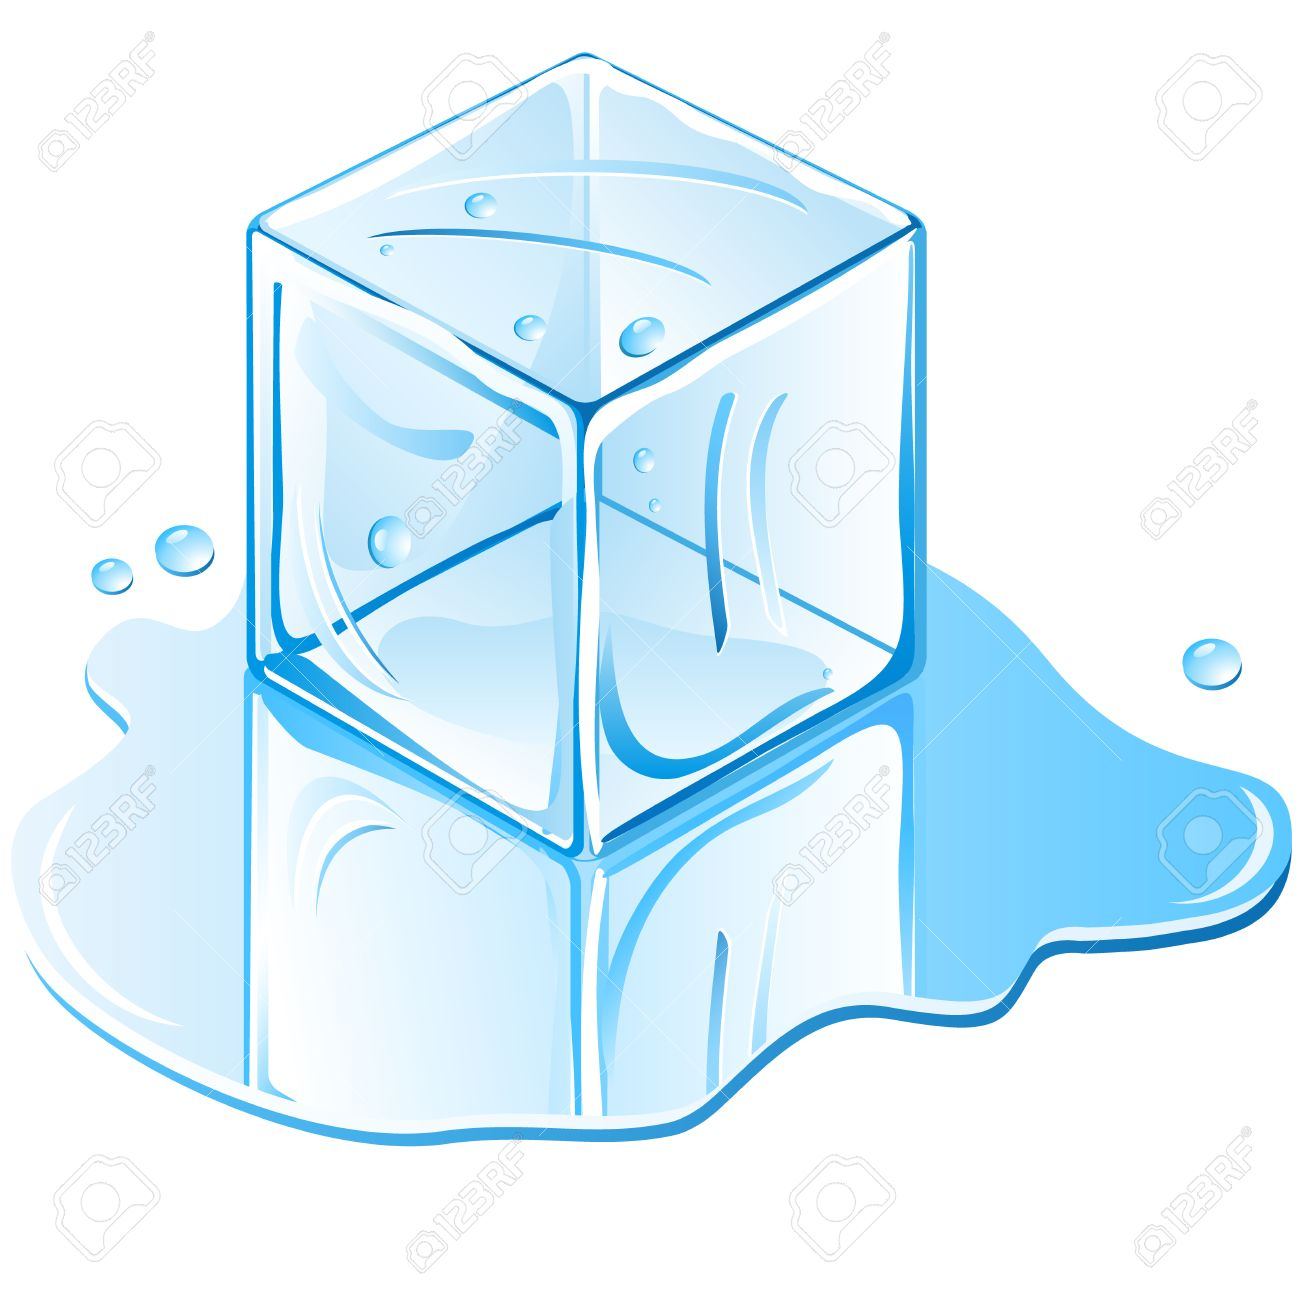 ice cube royalty free cliparts vectors and stock illustration rh 123rf com ice cube clip art free ice cubes clipart black and white